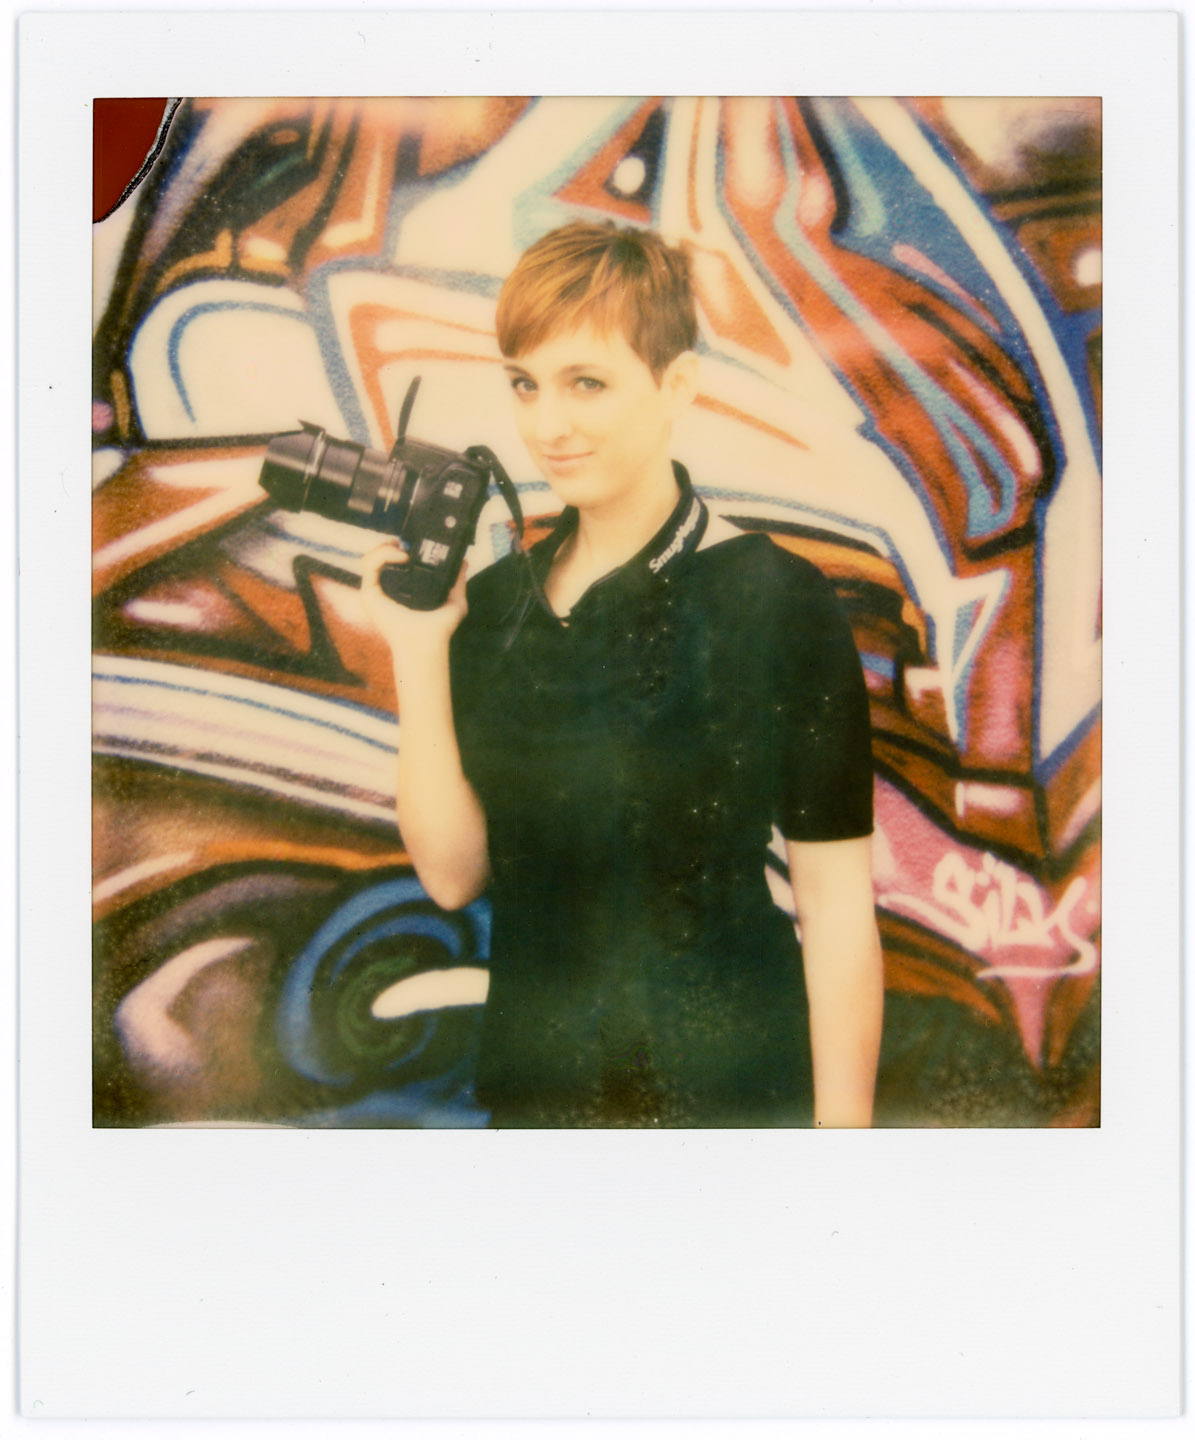 Pamela photographed with Impossible Project Film